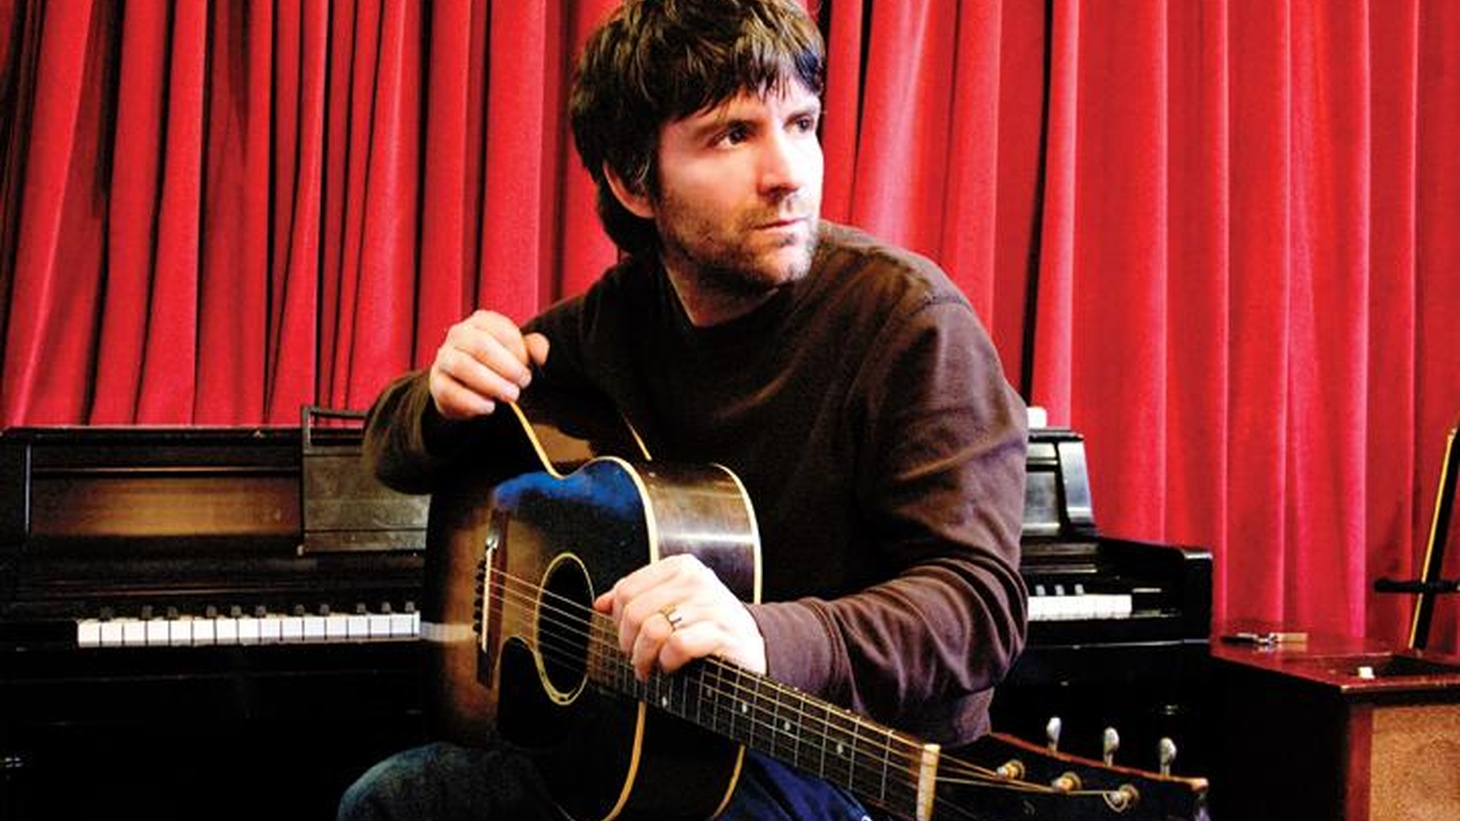 ...from Porcupine.   Joshua Tree's Tim Easton recorded his latest CD, Porcupine, in a Nashville studio the old fashioned way, without overdubs or click tracks.